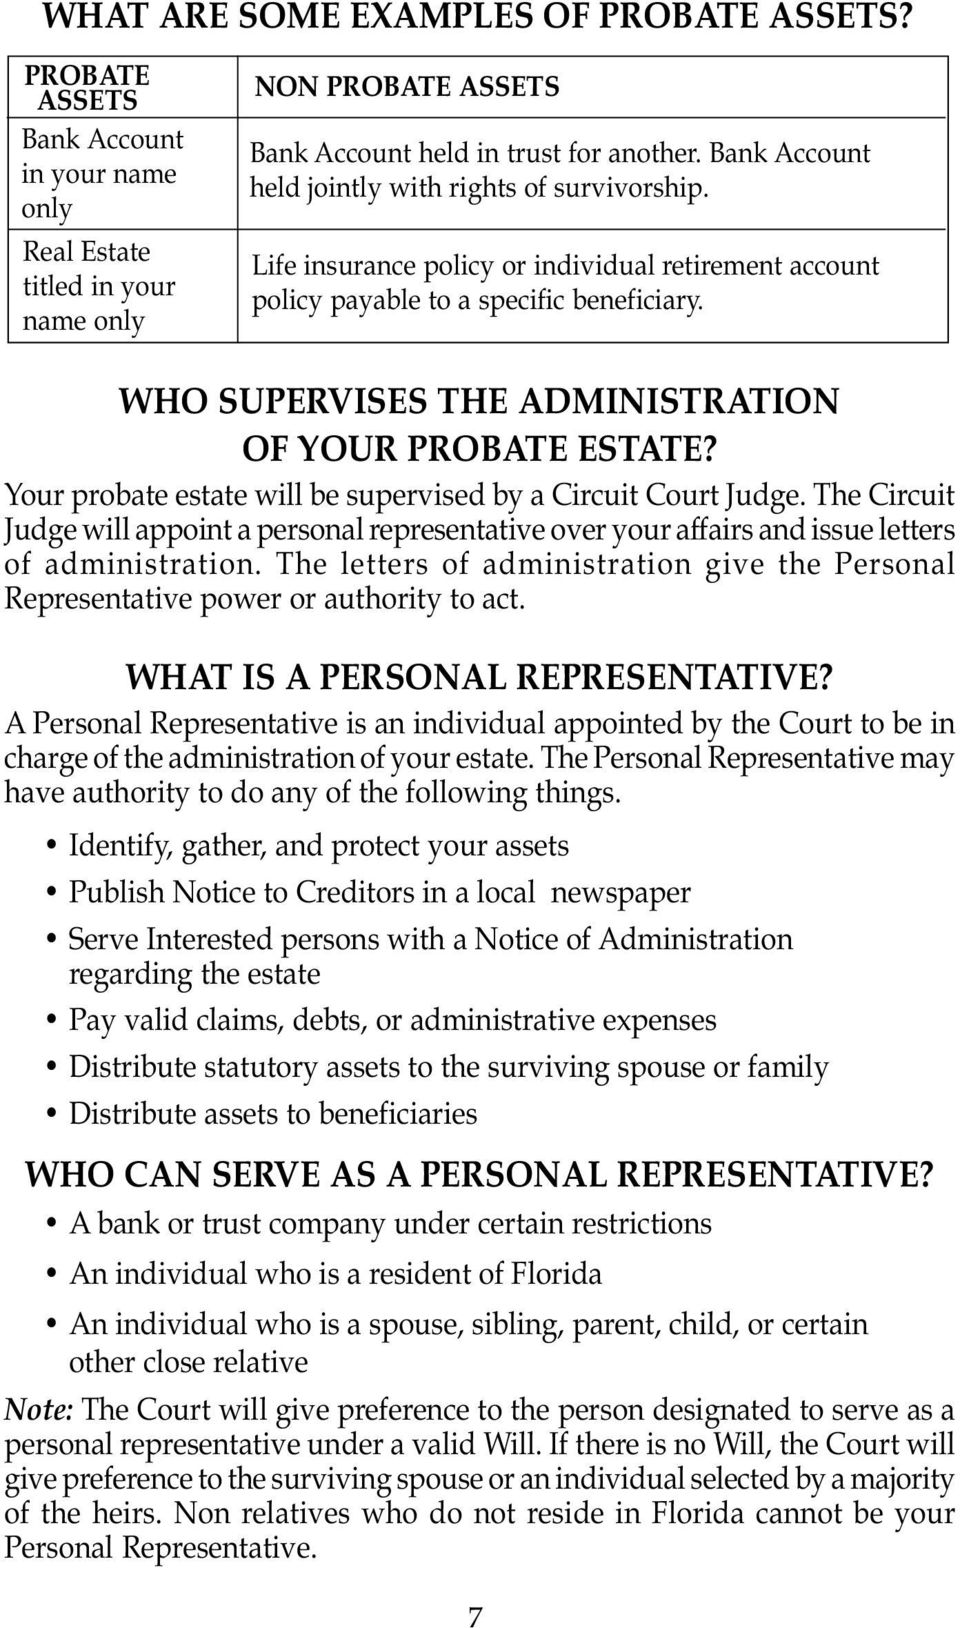 WHO SUPERVISES THE ADMINISTRATION OF YOUR PROBATE ESTATE? Your probate estate will be supervised by a Circuit Court Judge.